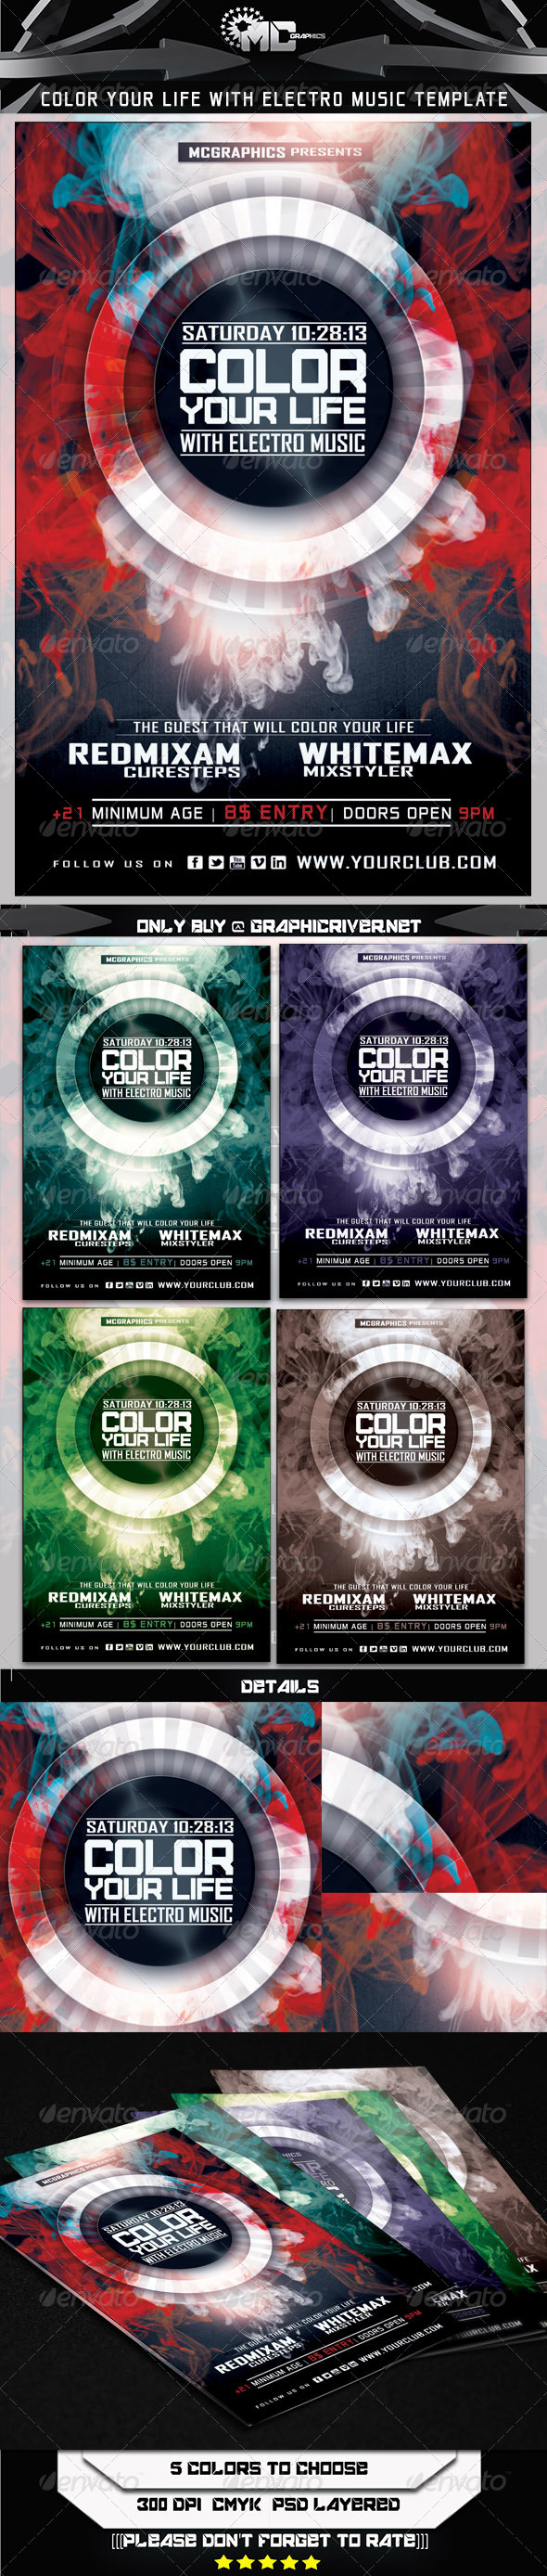 GraphicRiver Color Your Life With Electro Music Flyer Template 5526033